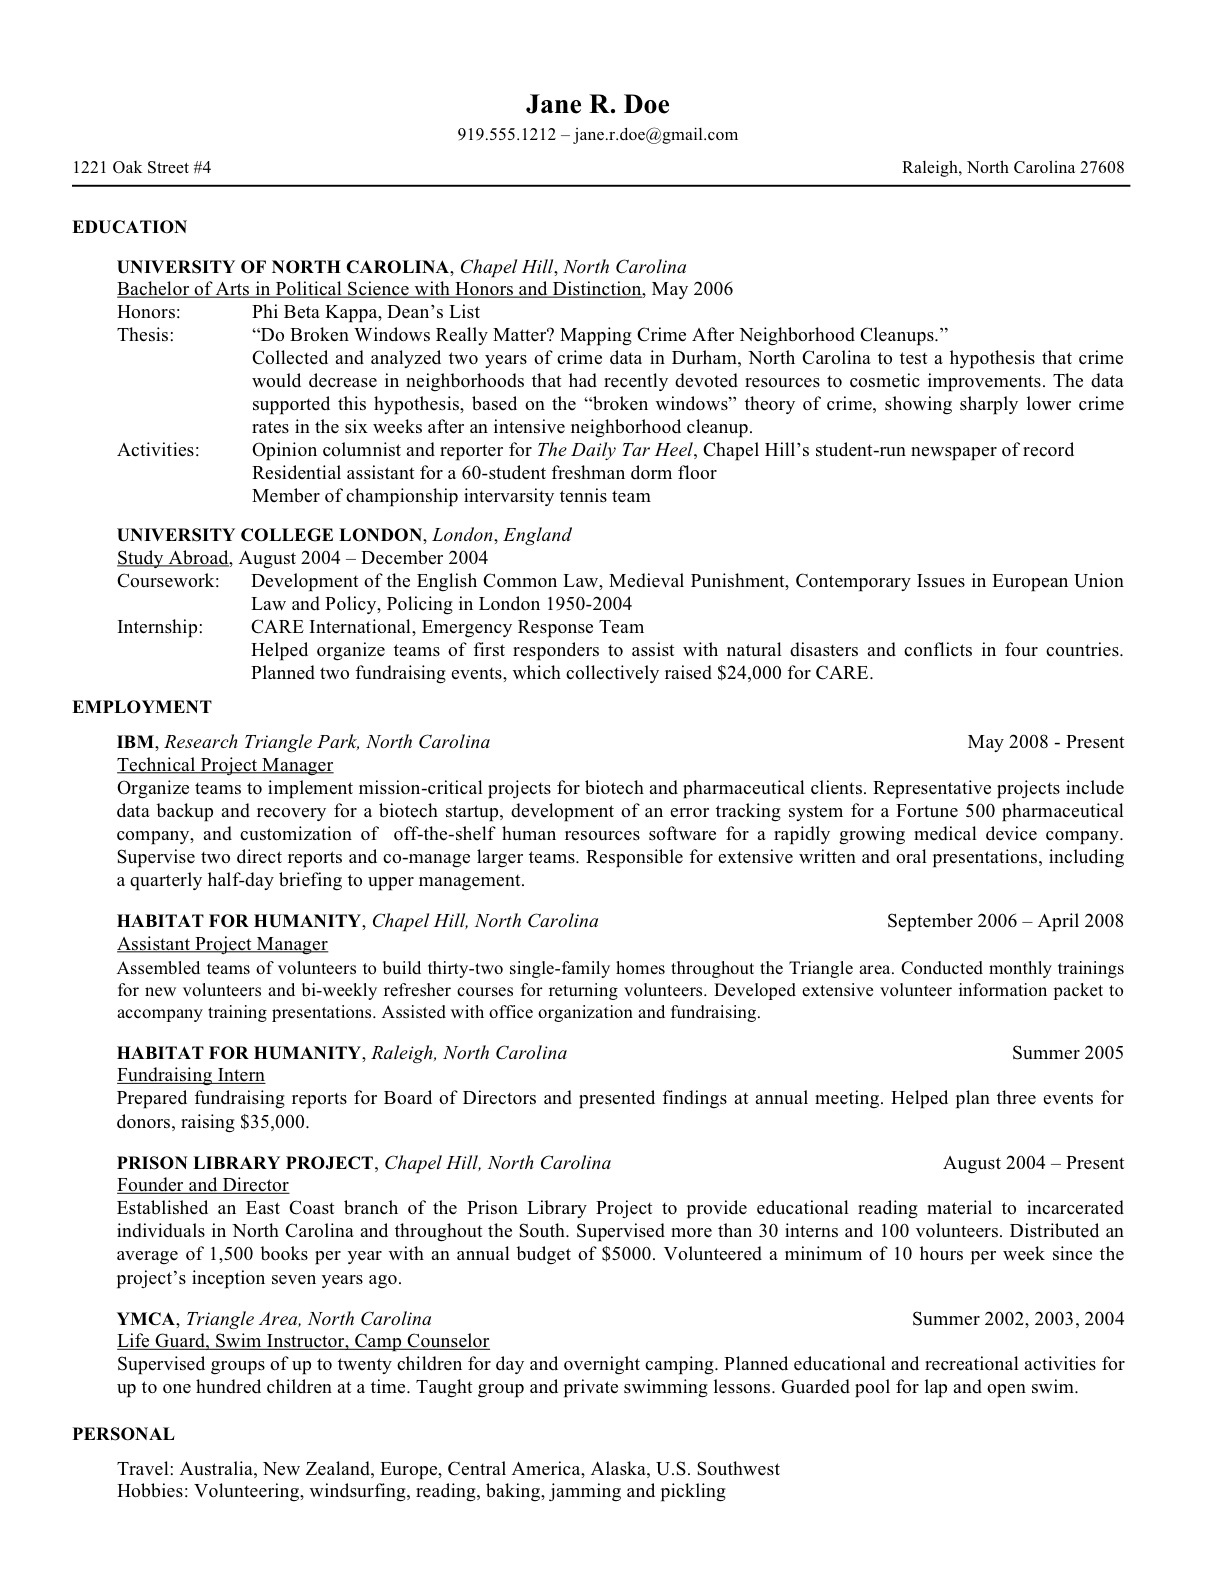 law school resume templates prepping your for of university at listing publications on Resume Listing Publications On Resume